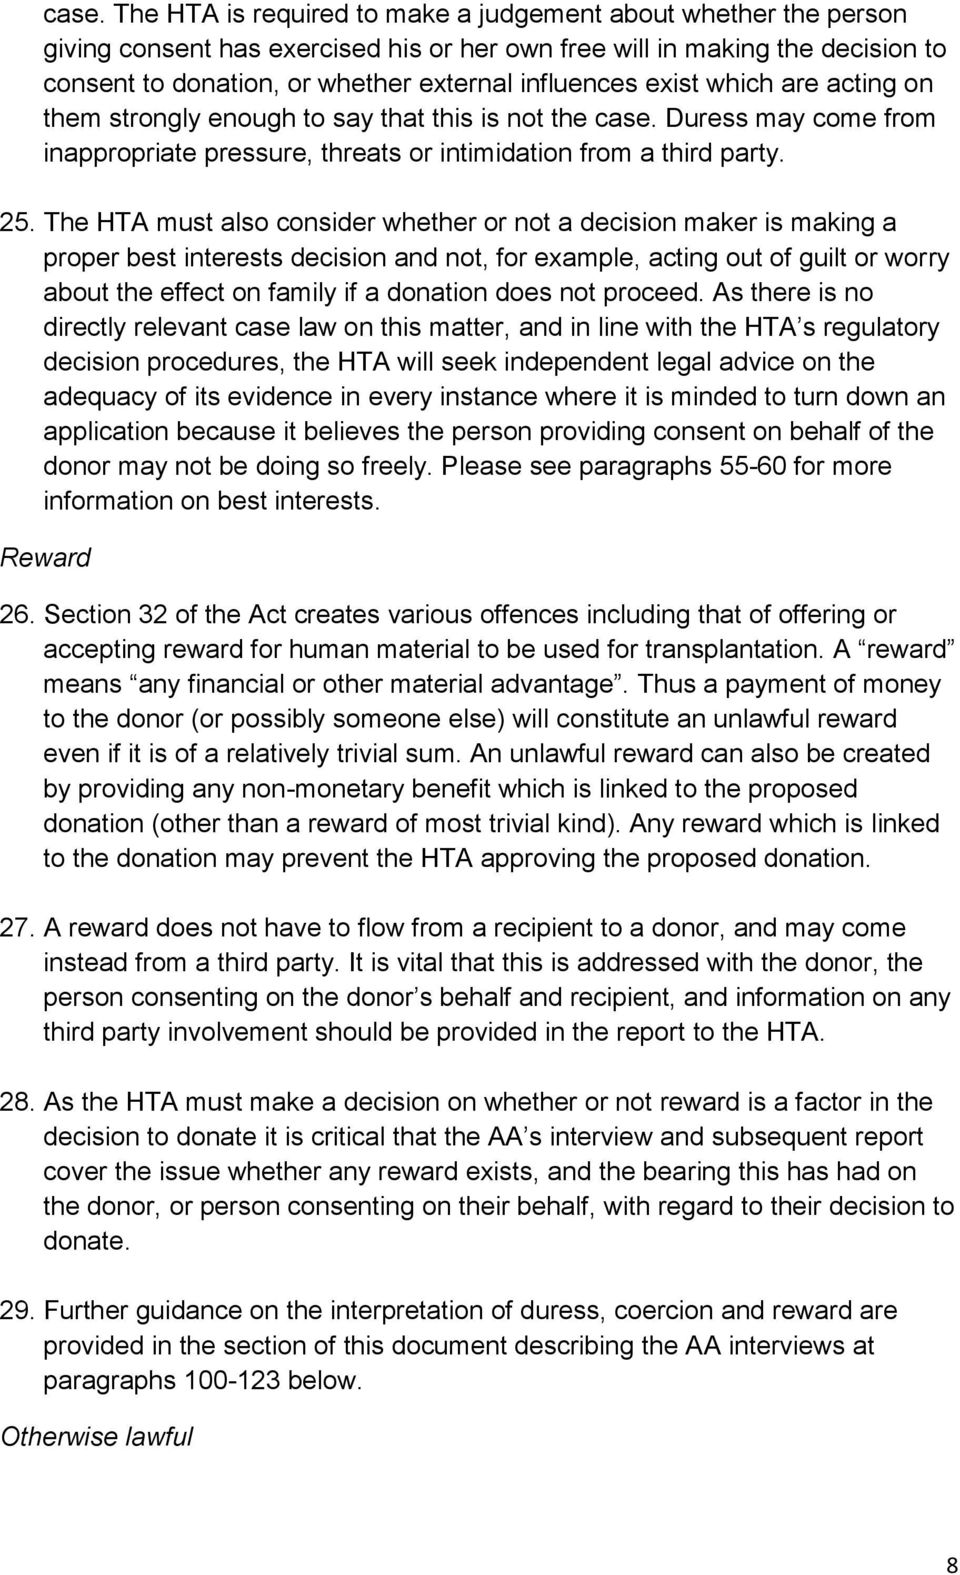 The HTA must also consider whether or not a decision maker is making a proper best interests decision and not, for example, acting out of guilt or worry about the effect on family if a donation does